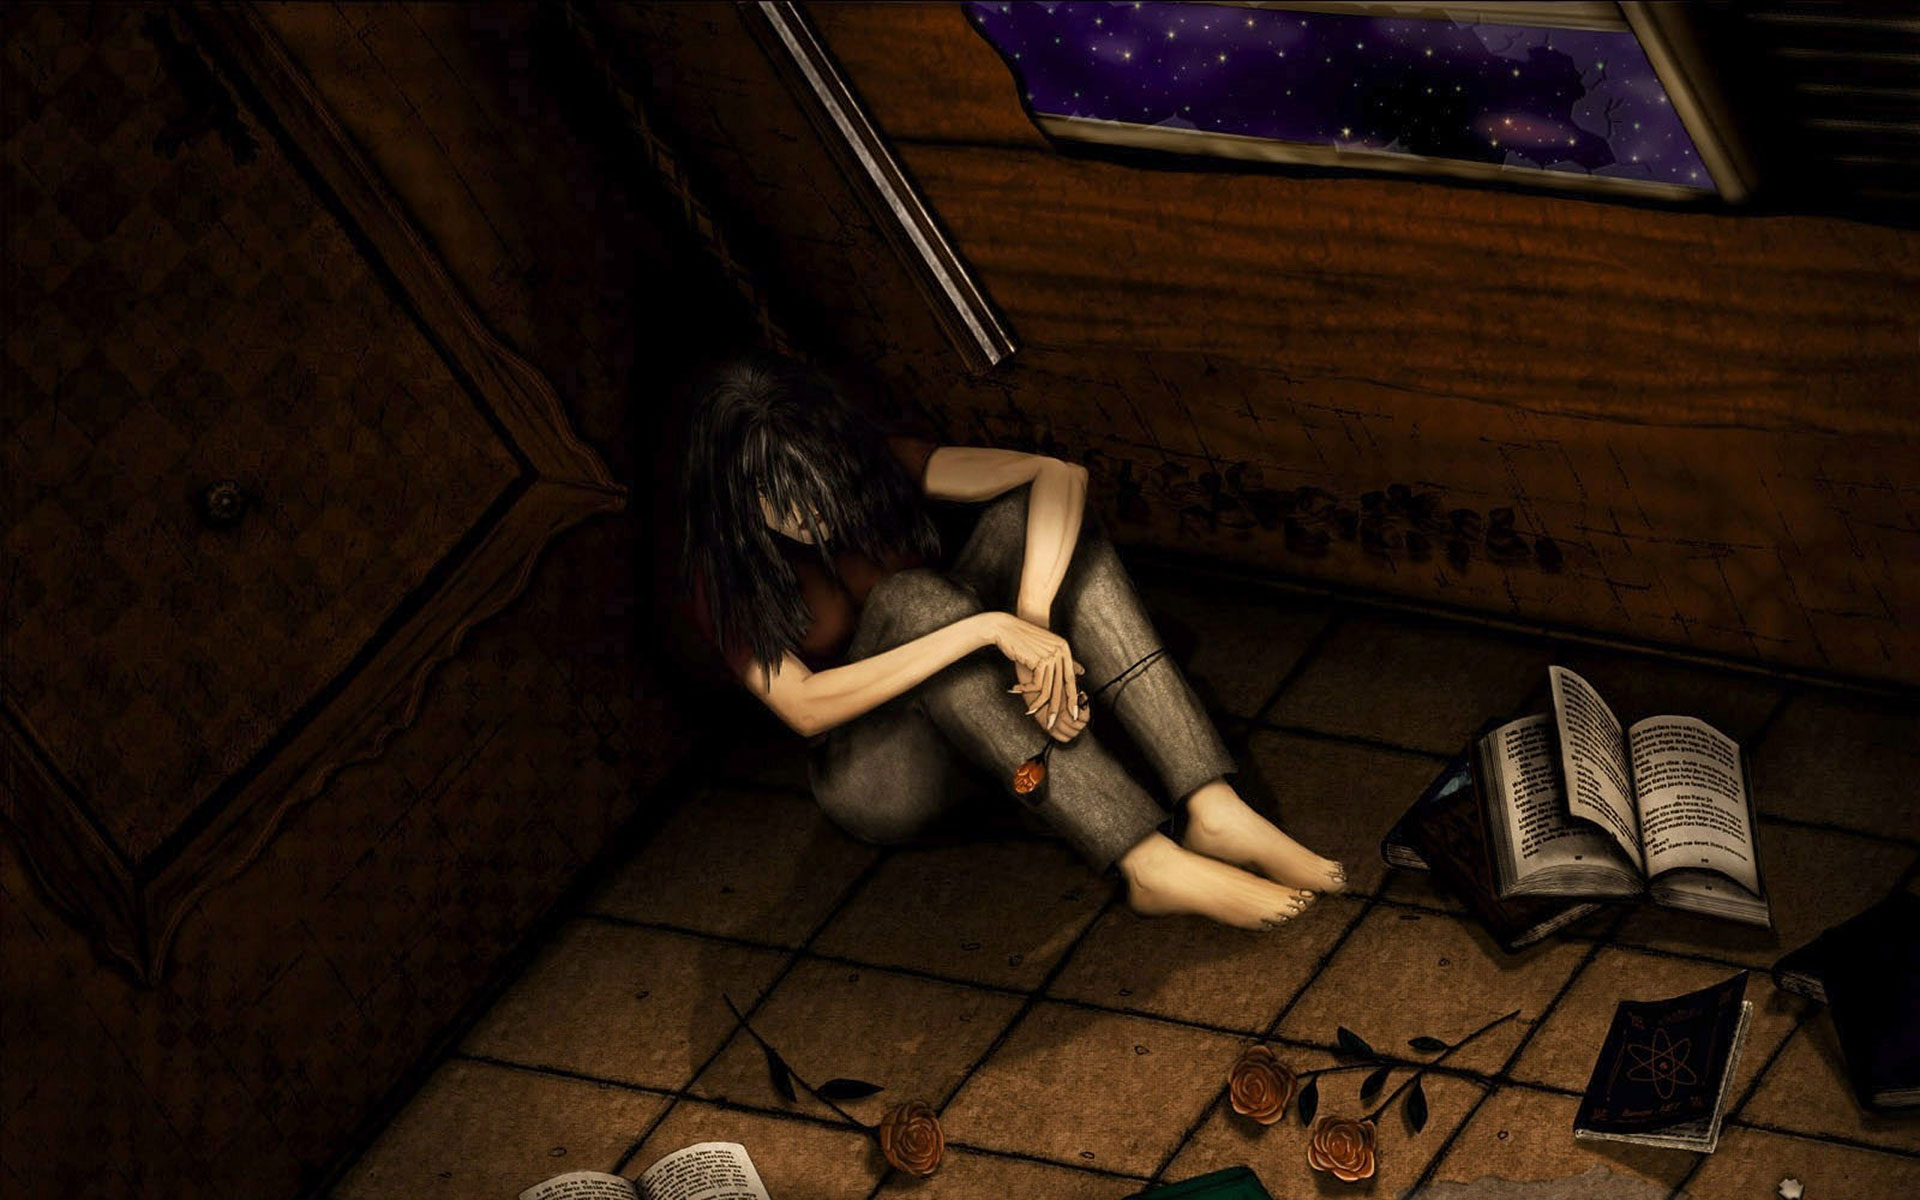 Sad animated girl in the corner of the room